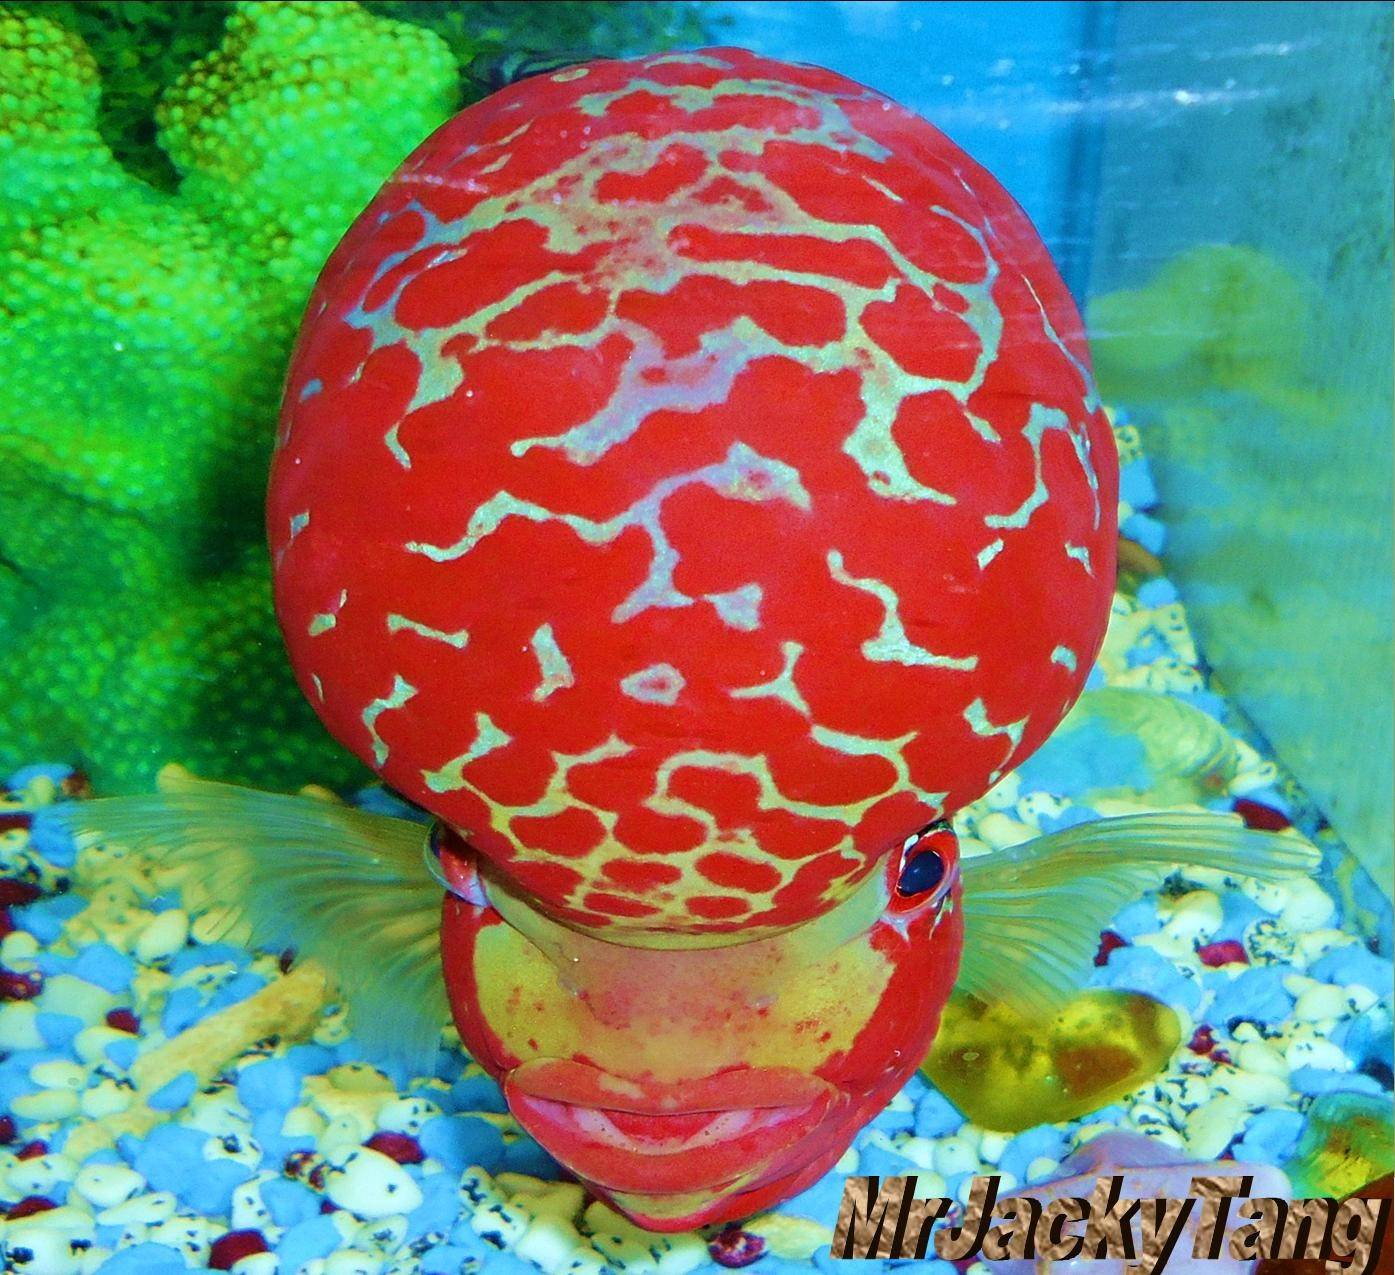 Grand Champion Winner Of The Flowerhorn Competition In Vietnam 2012 !